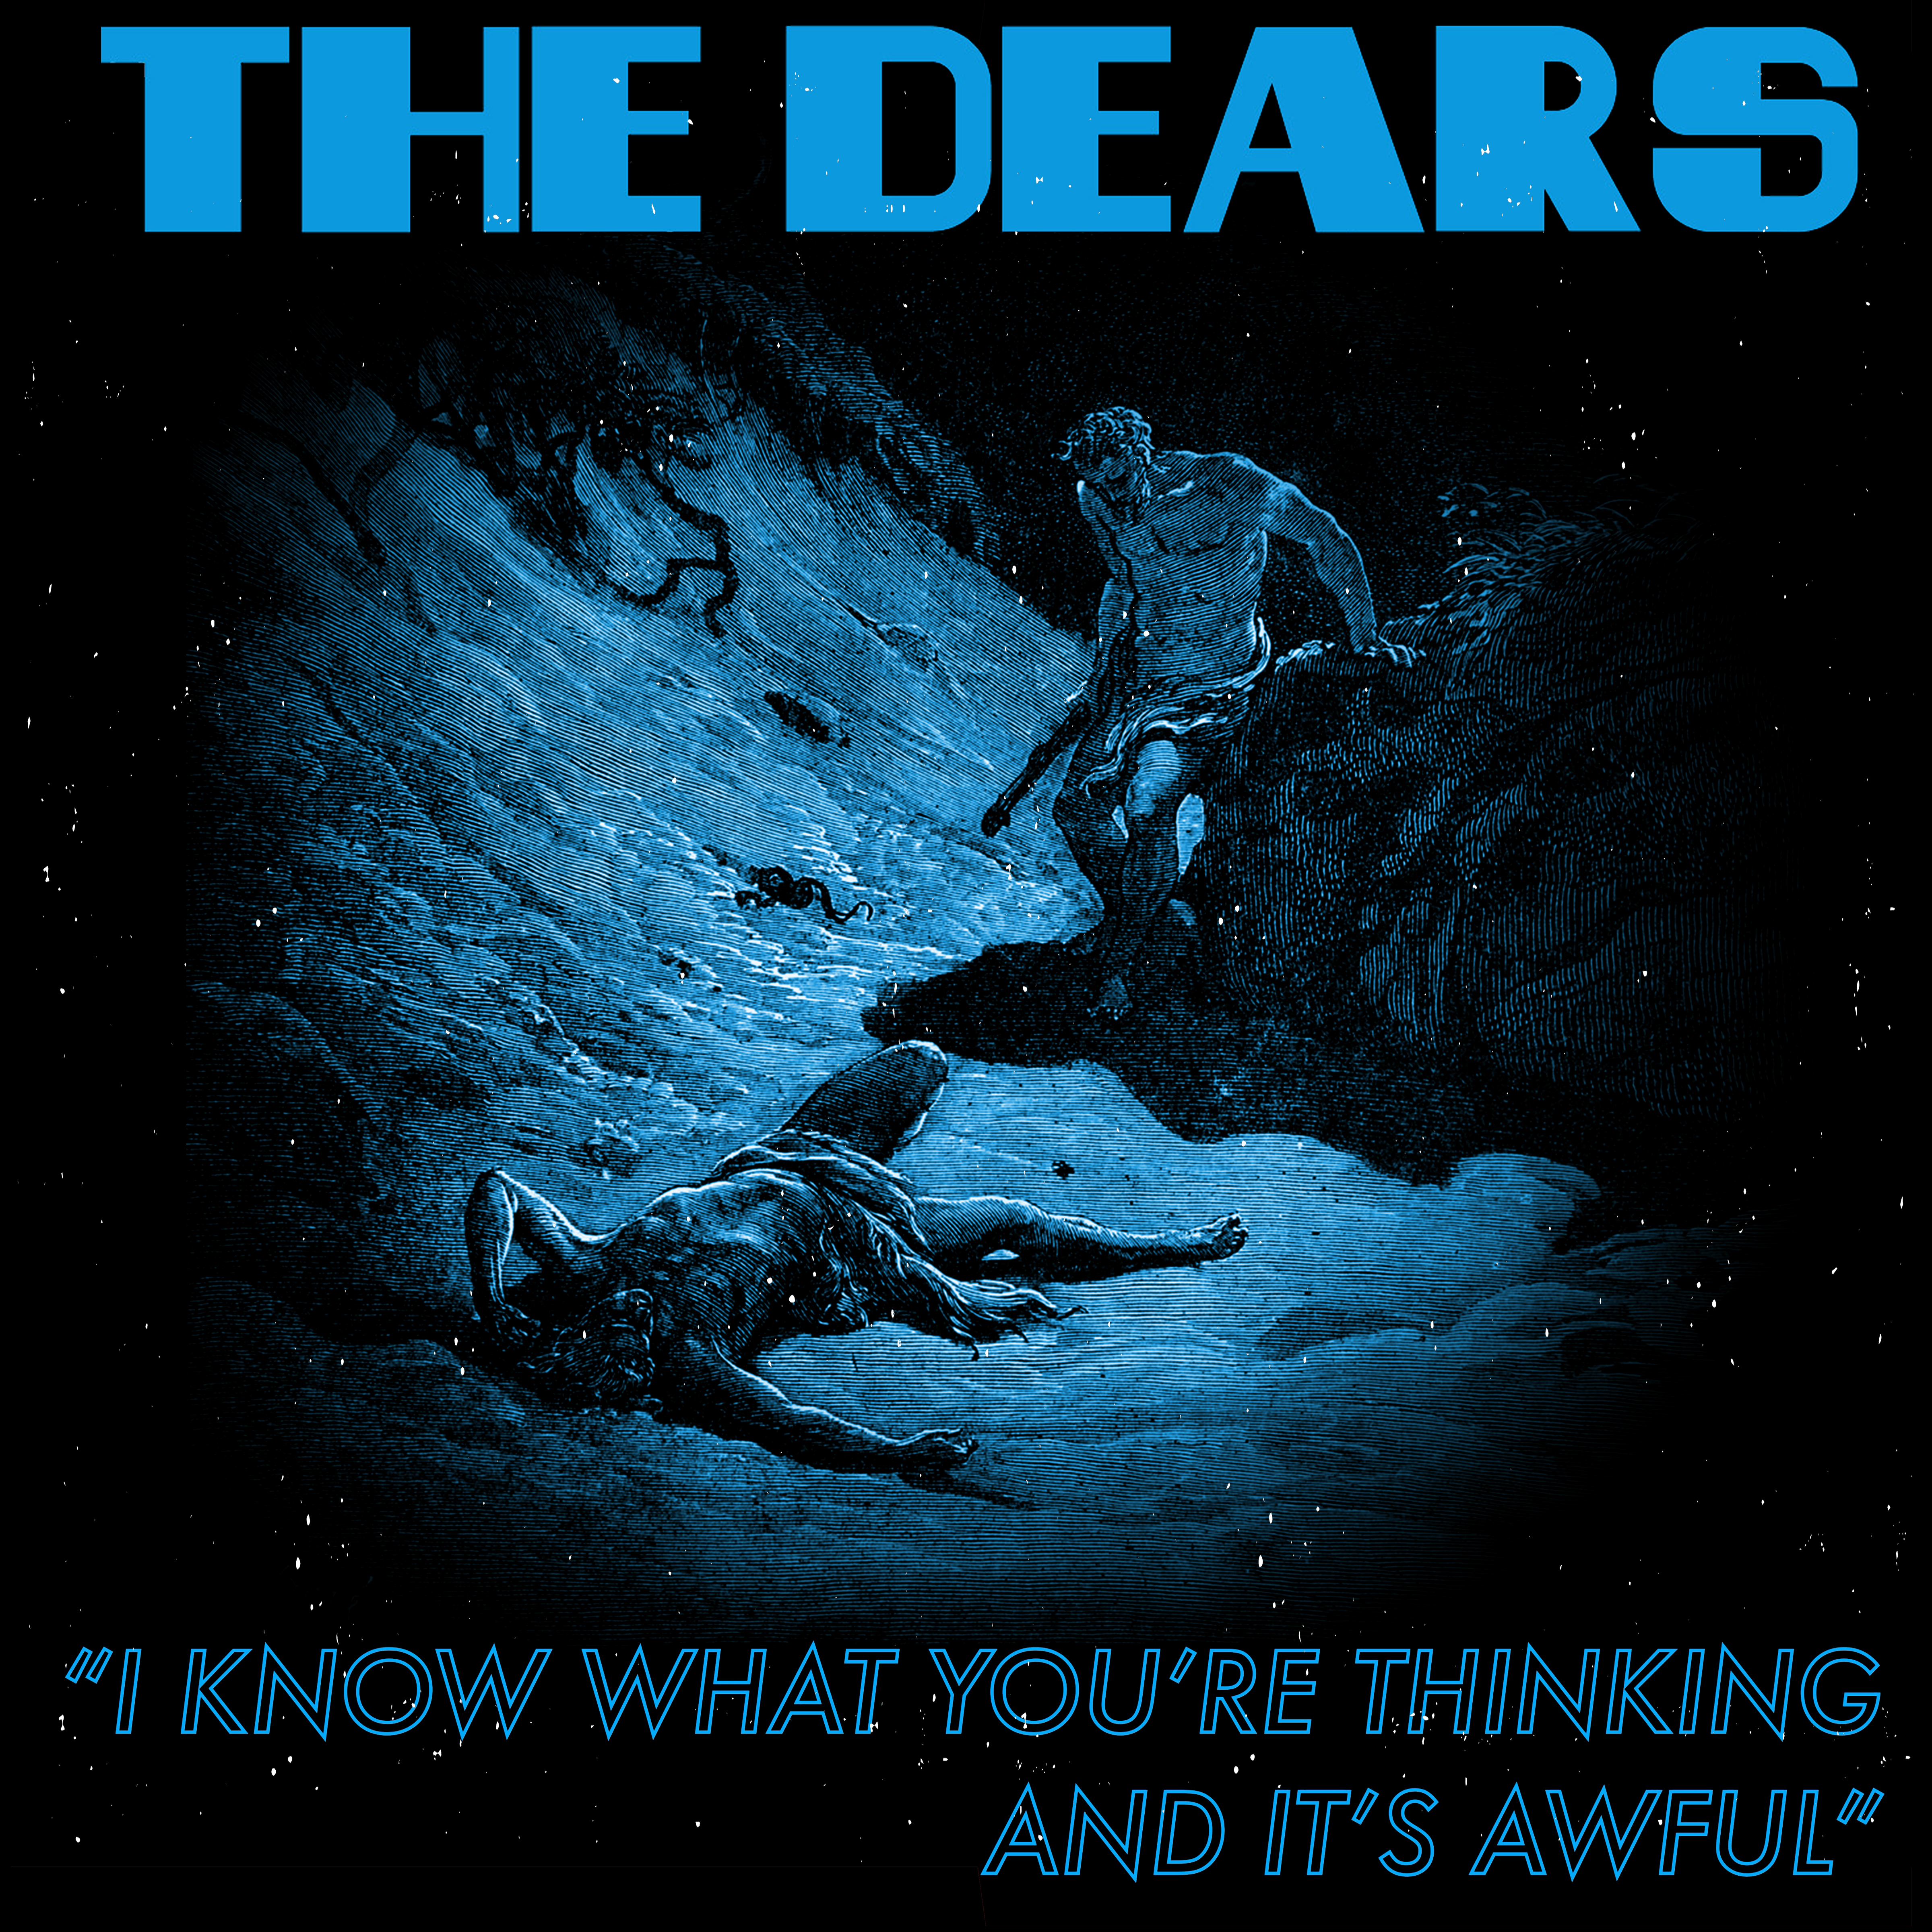 The Dears - I Know What You're Thinking And It's Awful - Single